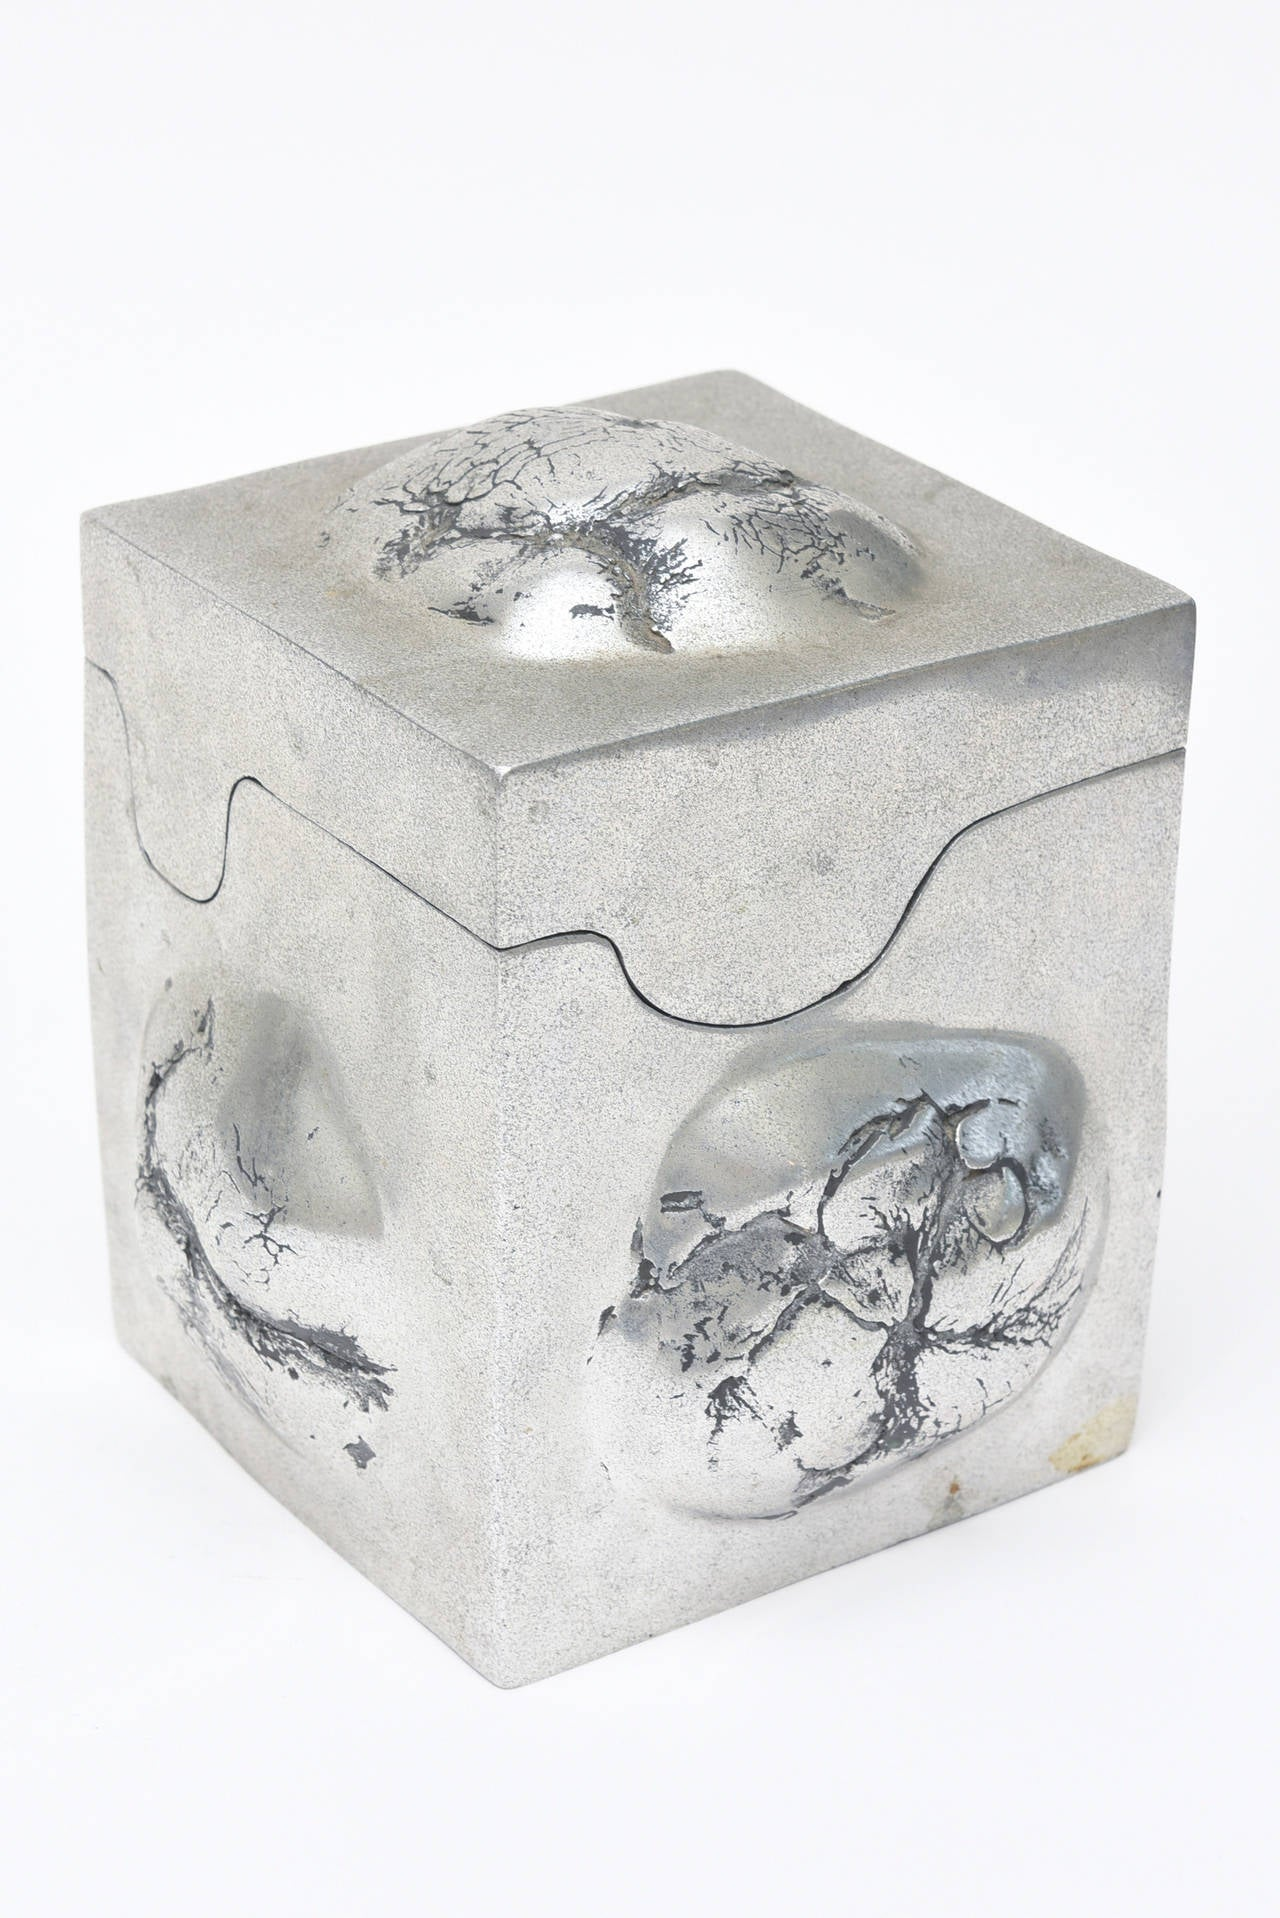 Three Signed Aluminum Sculptural Objects in the Style of Richard Etts In Good Condition For Sale In North Miami, FL